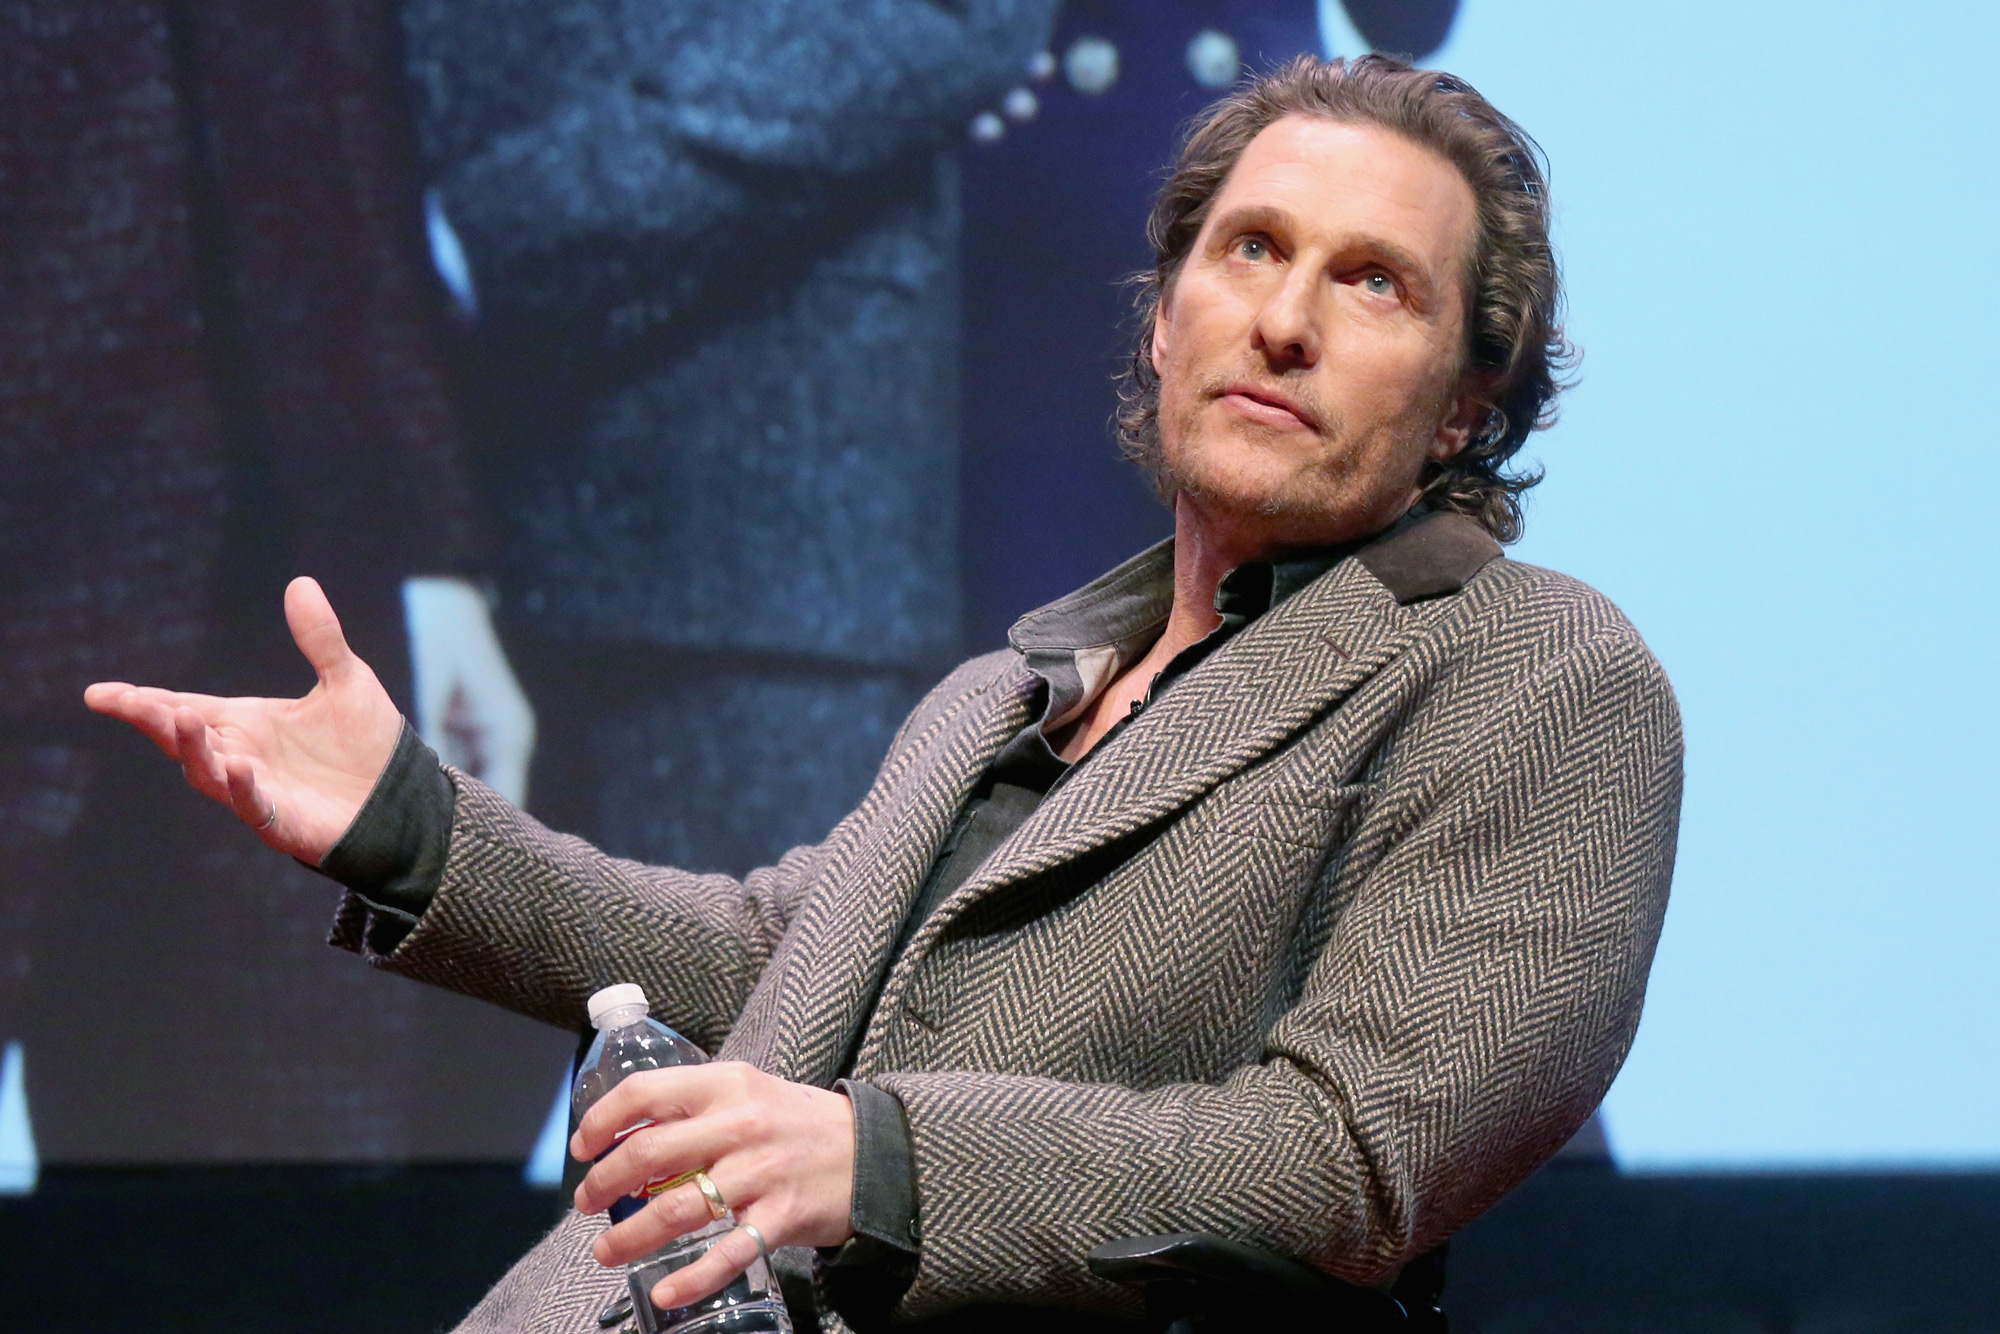 Matthew McConaughey slams Hollywood hypocrisy over 2020 election